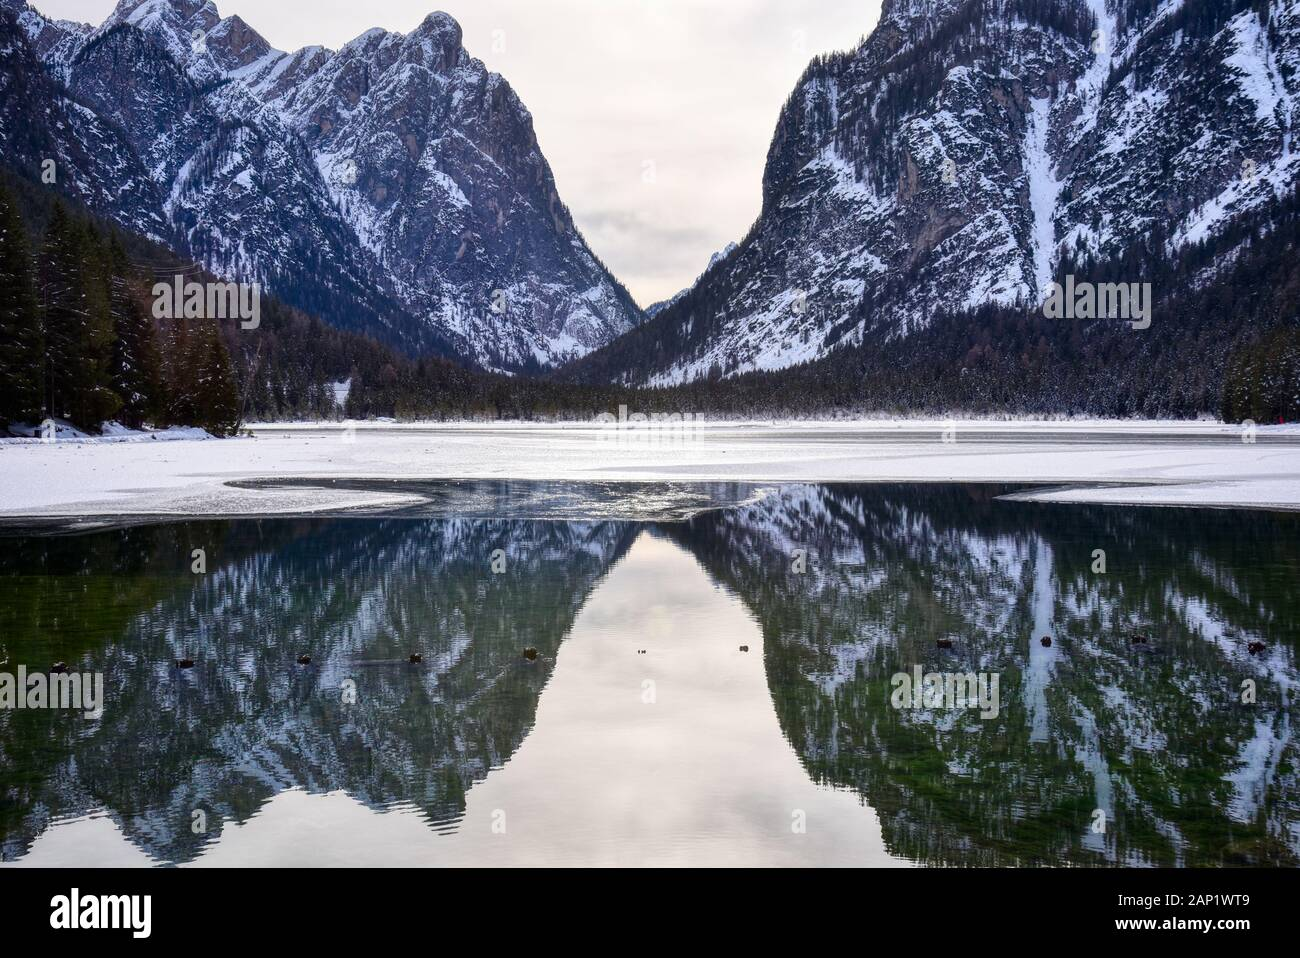 The mountains of the valley are reflected in the not frozen part of the lake of Dobbiaco Stock Photo